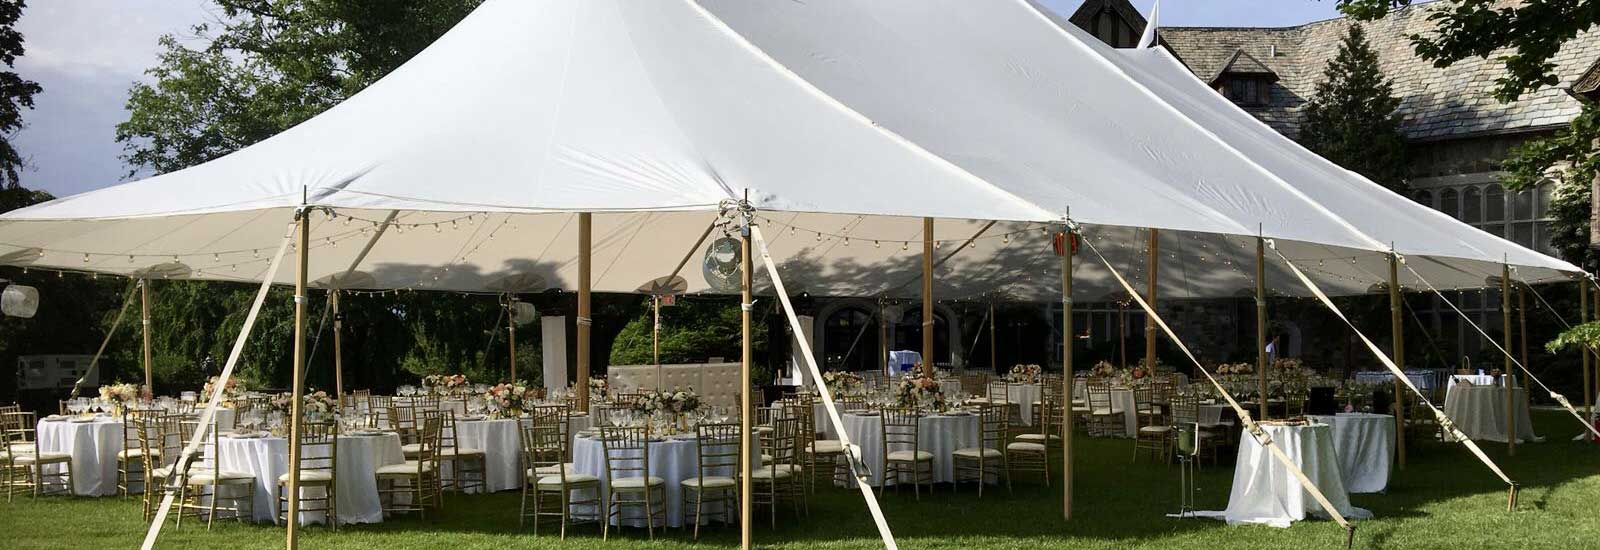 Party and Special Event Rentals in Dutchess County